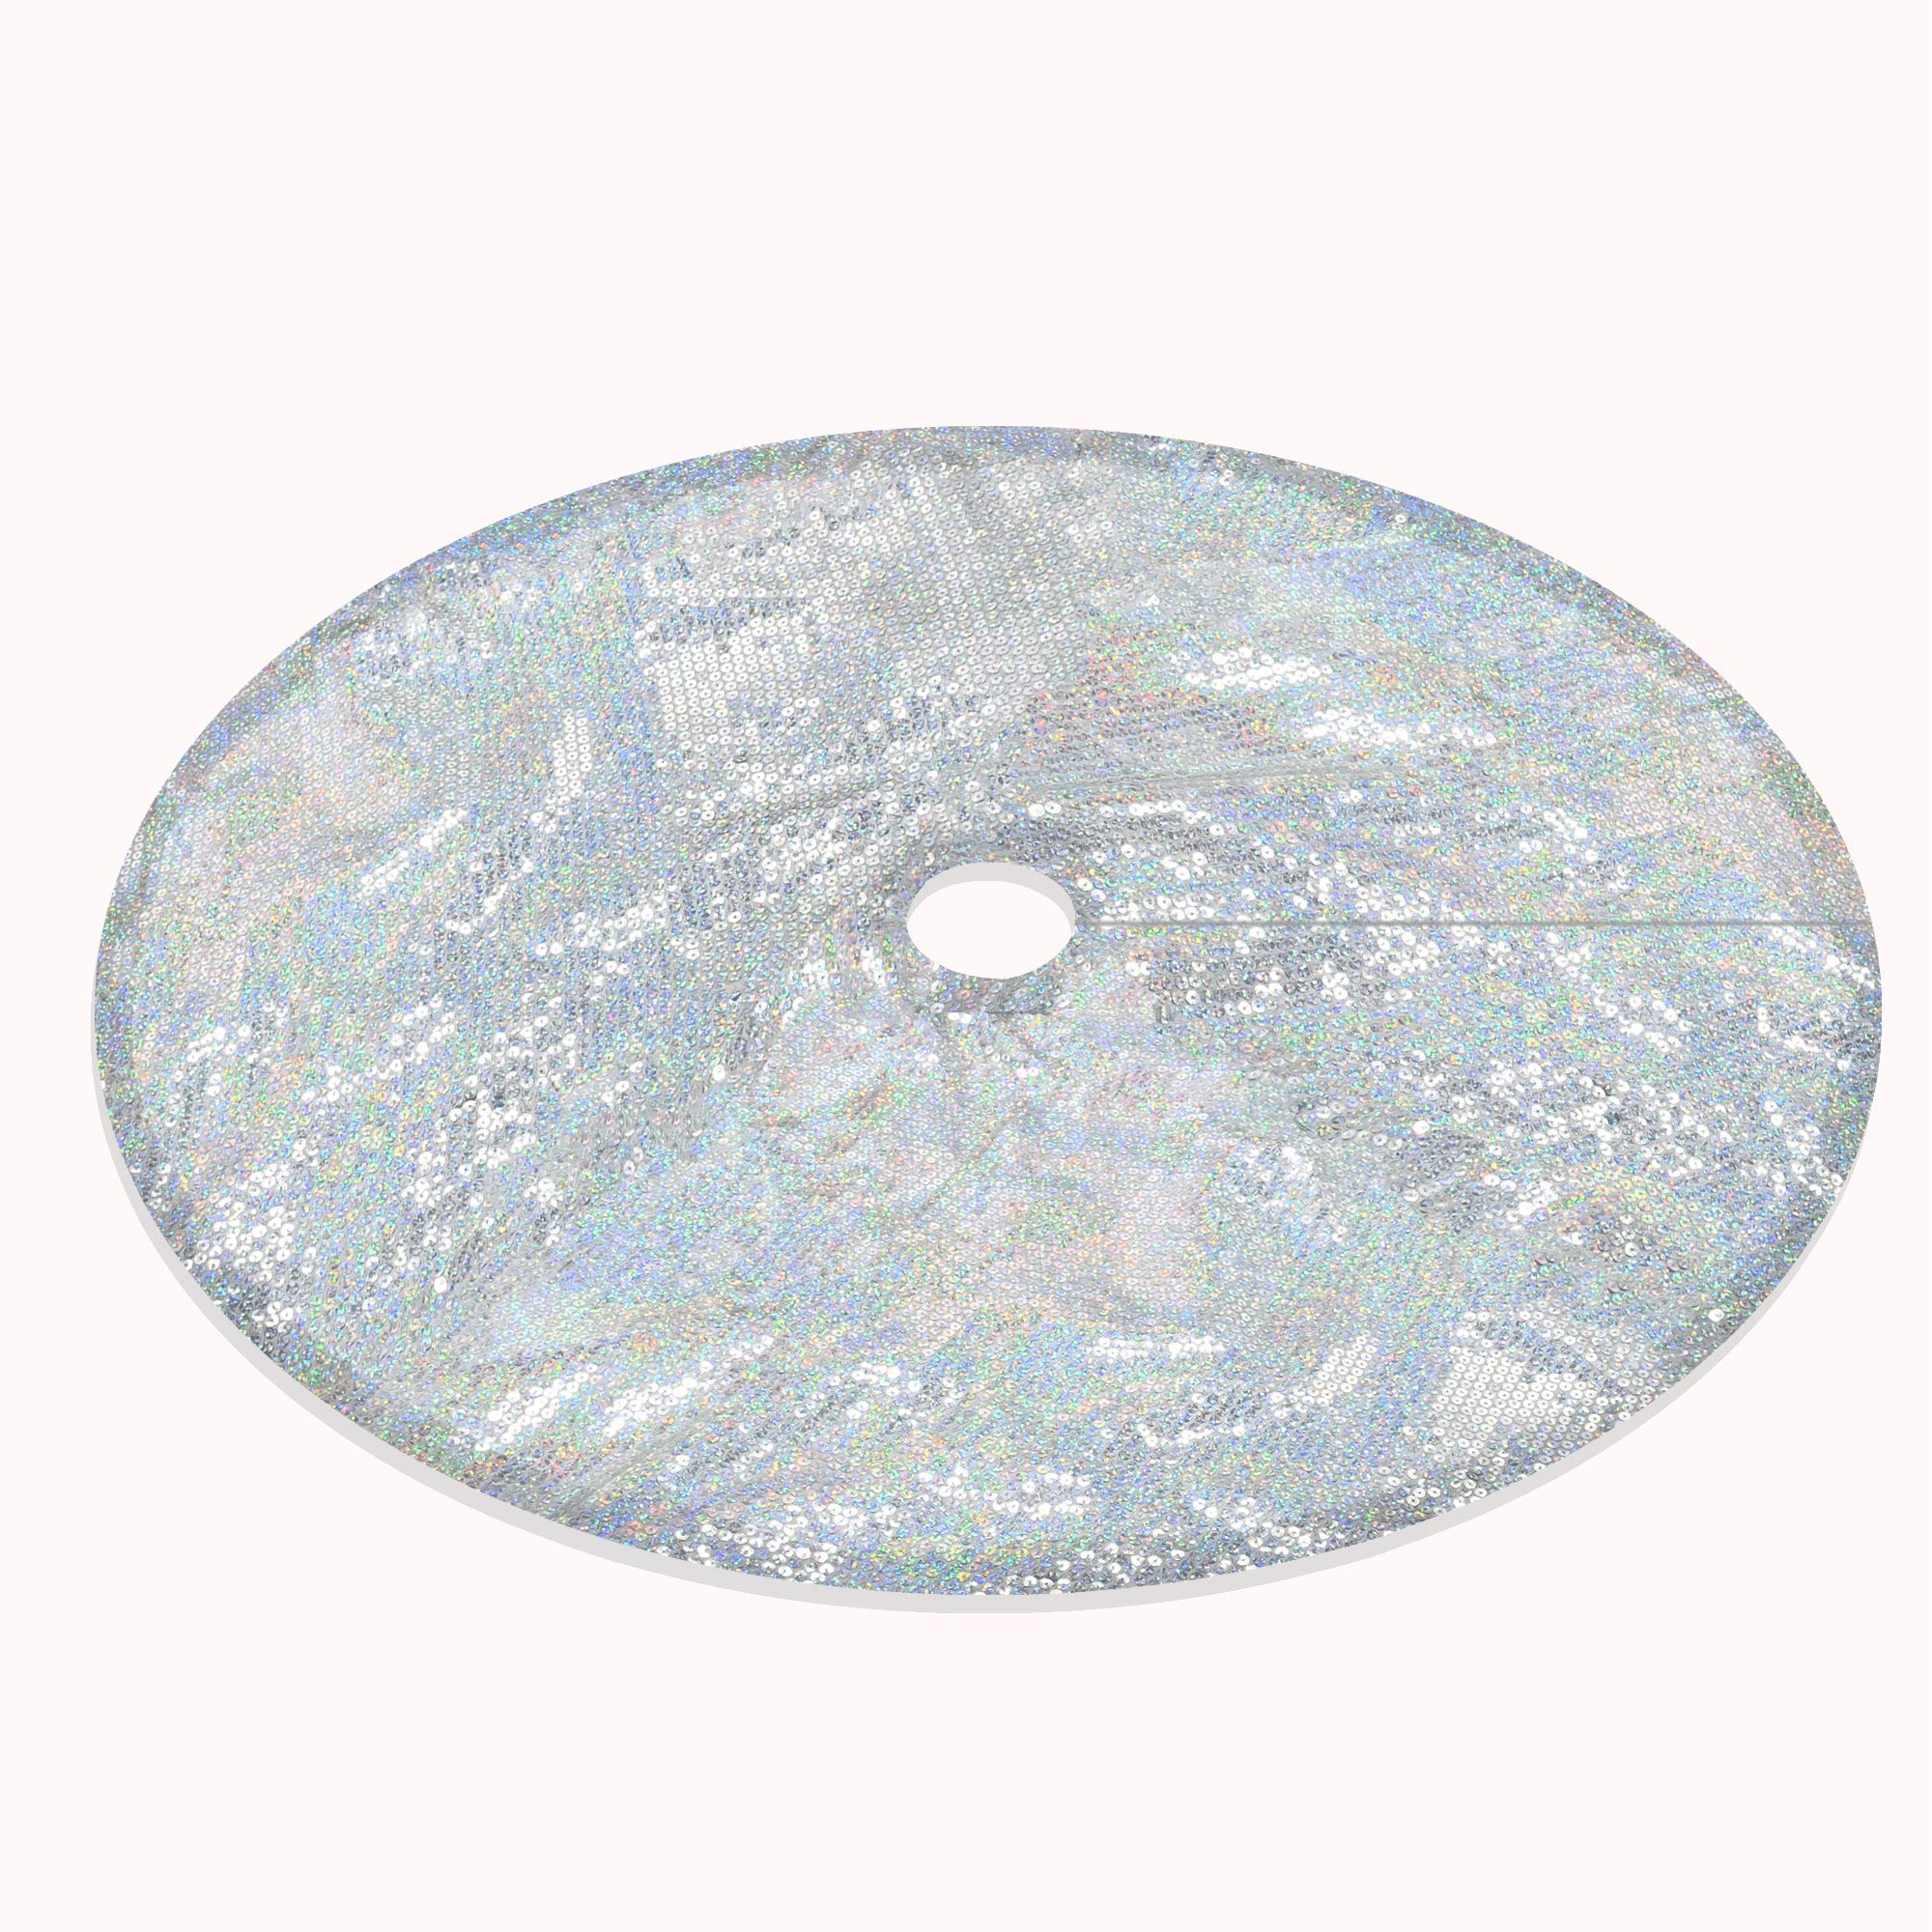 YuQi 48 Inch Round Embroidery Shimmering Sequins Christmas Tree Skirt (Sliver)